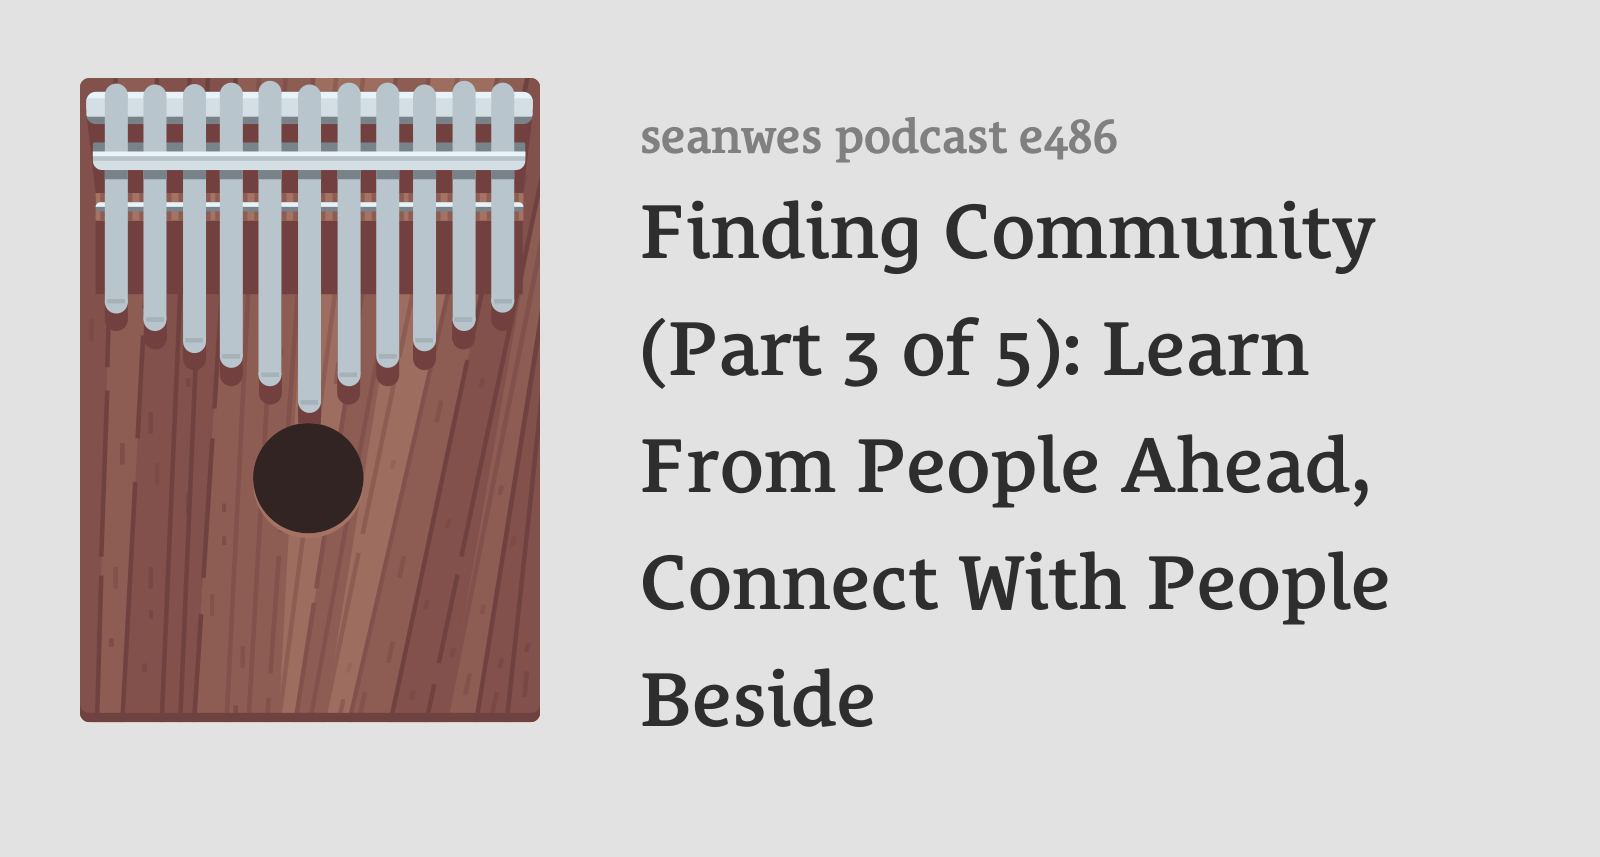 486: Sabbatical Episode: Finding Community (Part 3 of 5): Learn From People Ahead, Connect With People Beside